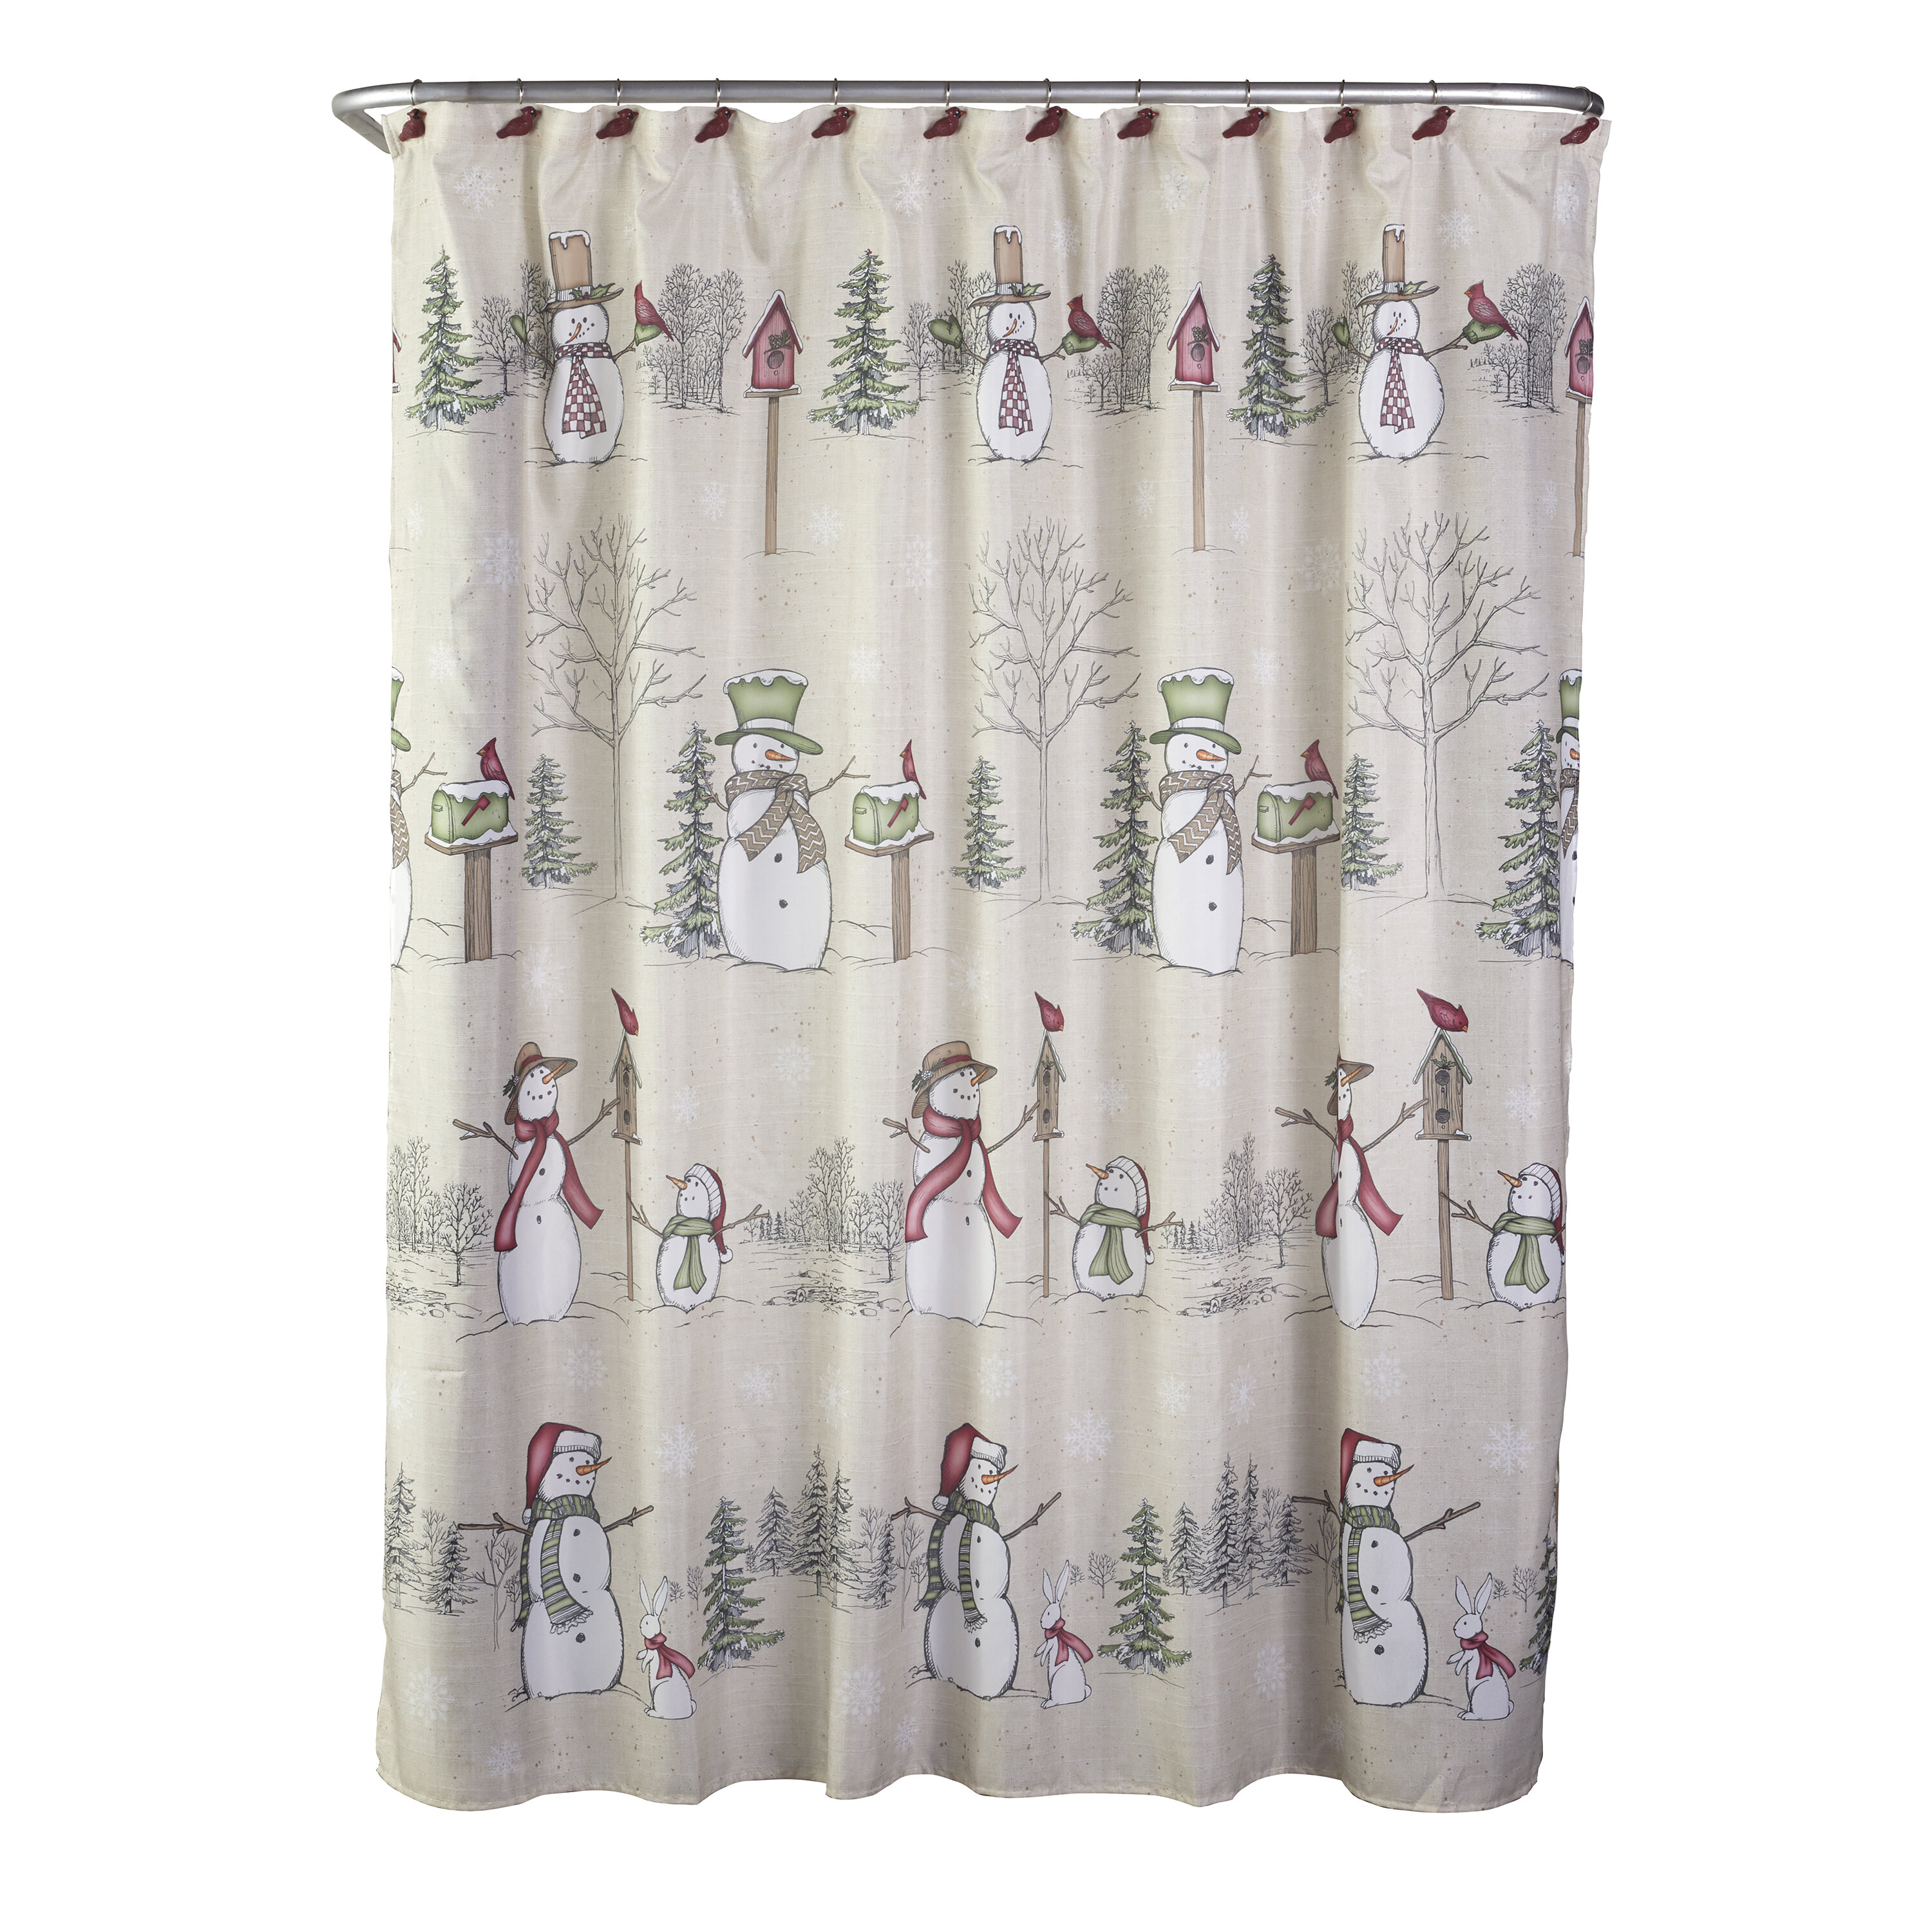 Home Bath Wash Your Worries Away Shower Decor Polyester